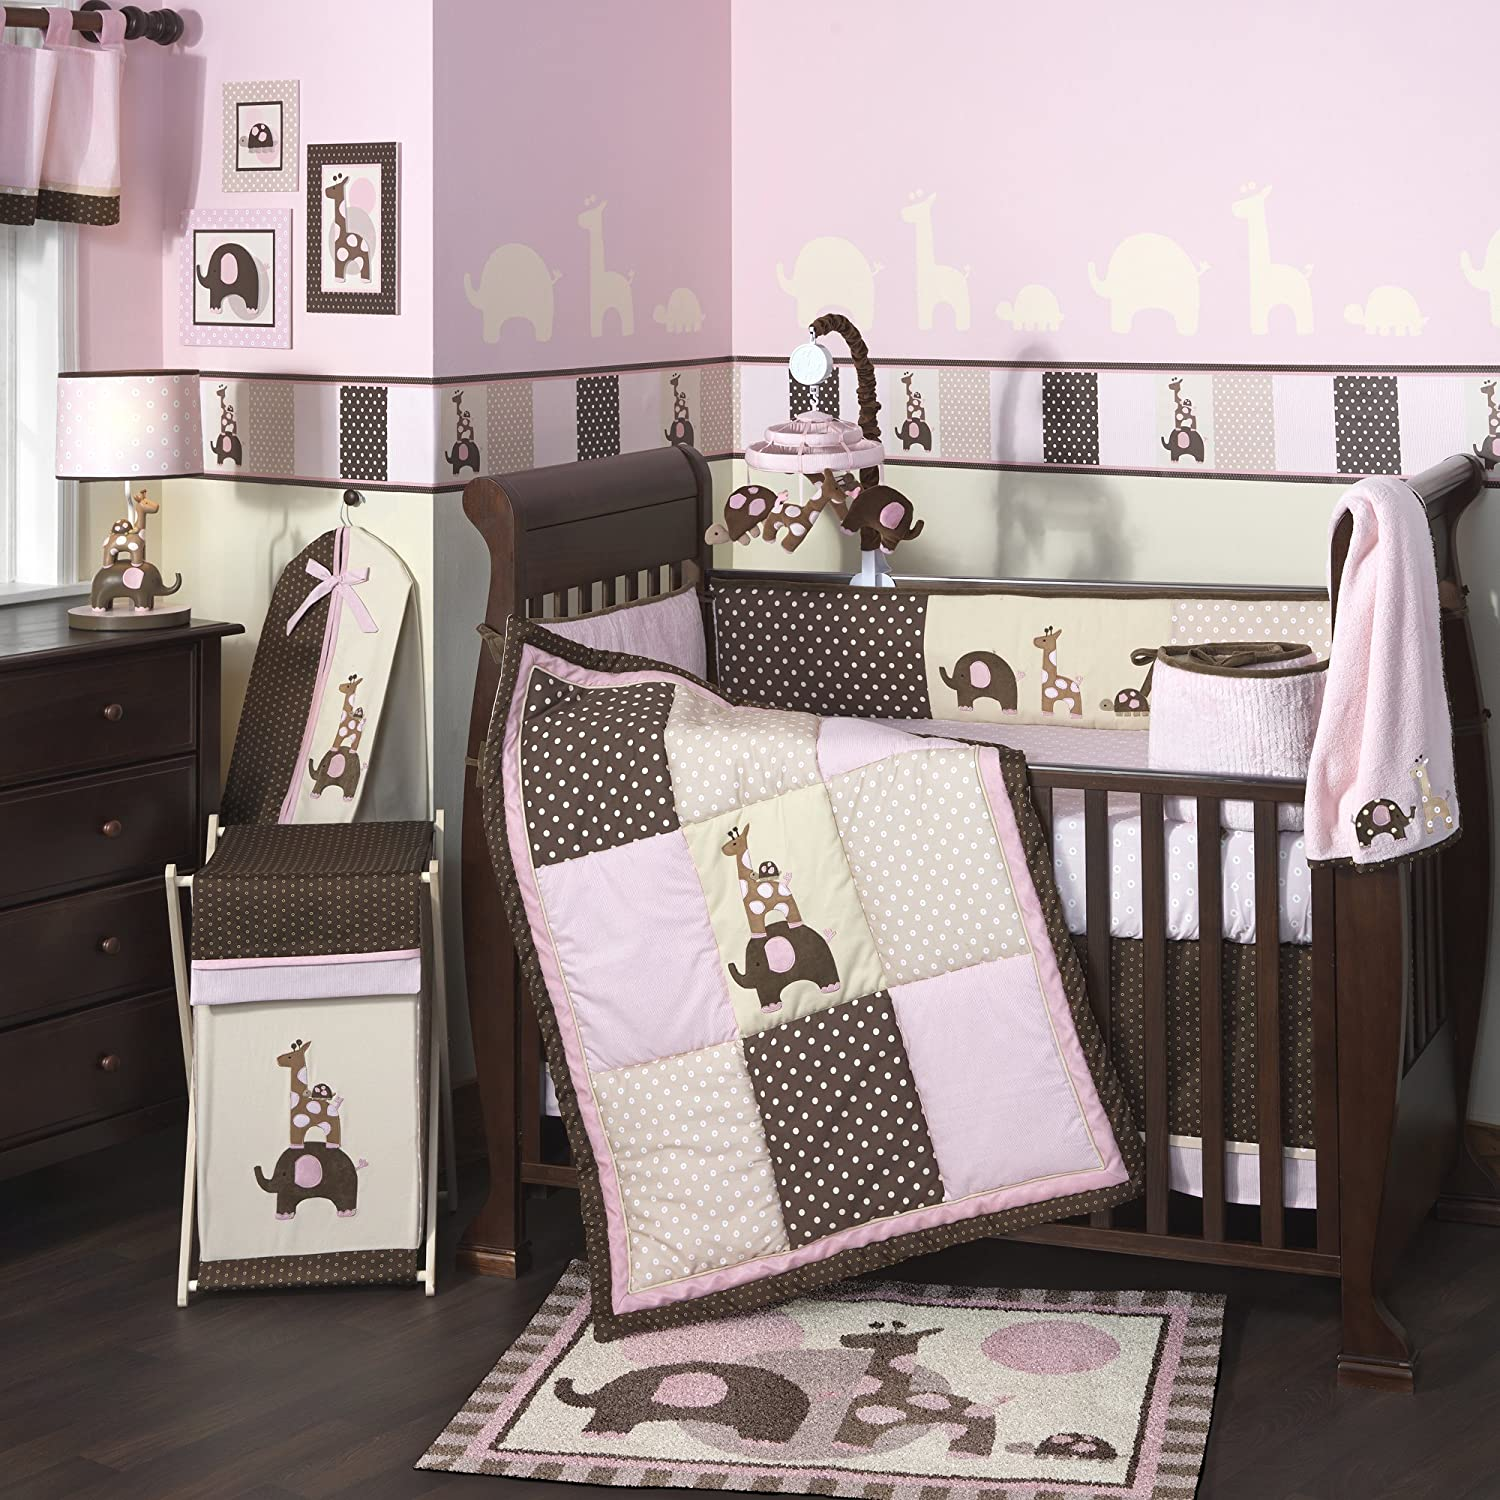 Lambs and Ivy Emma Crib Bedding Collection